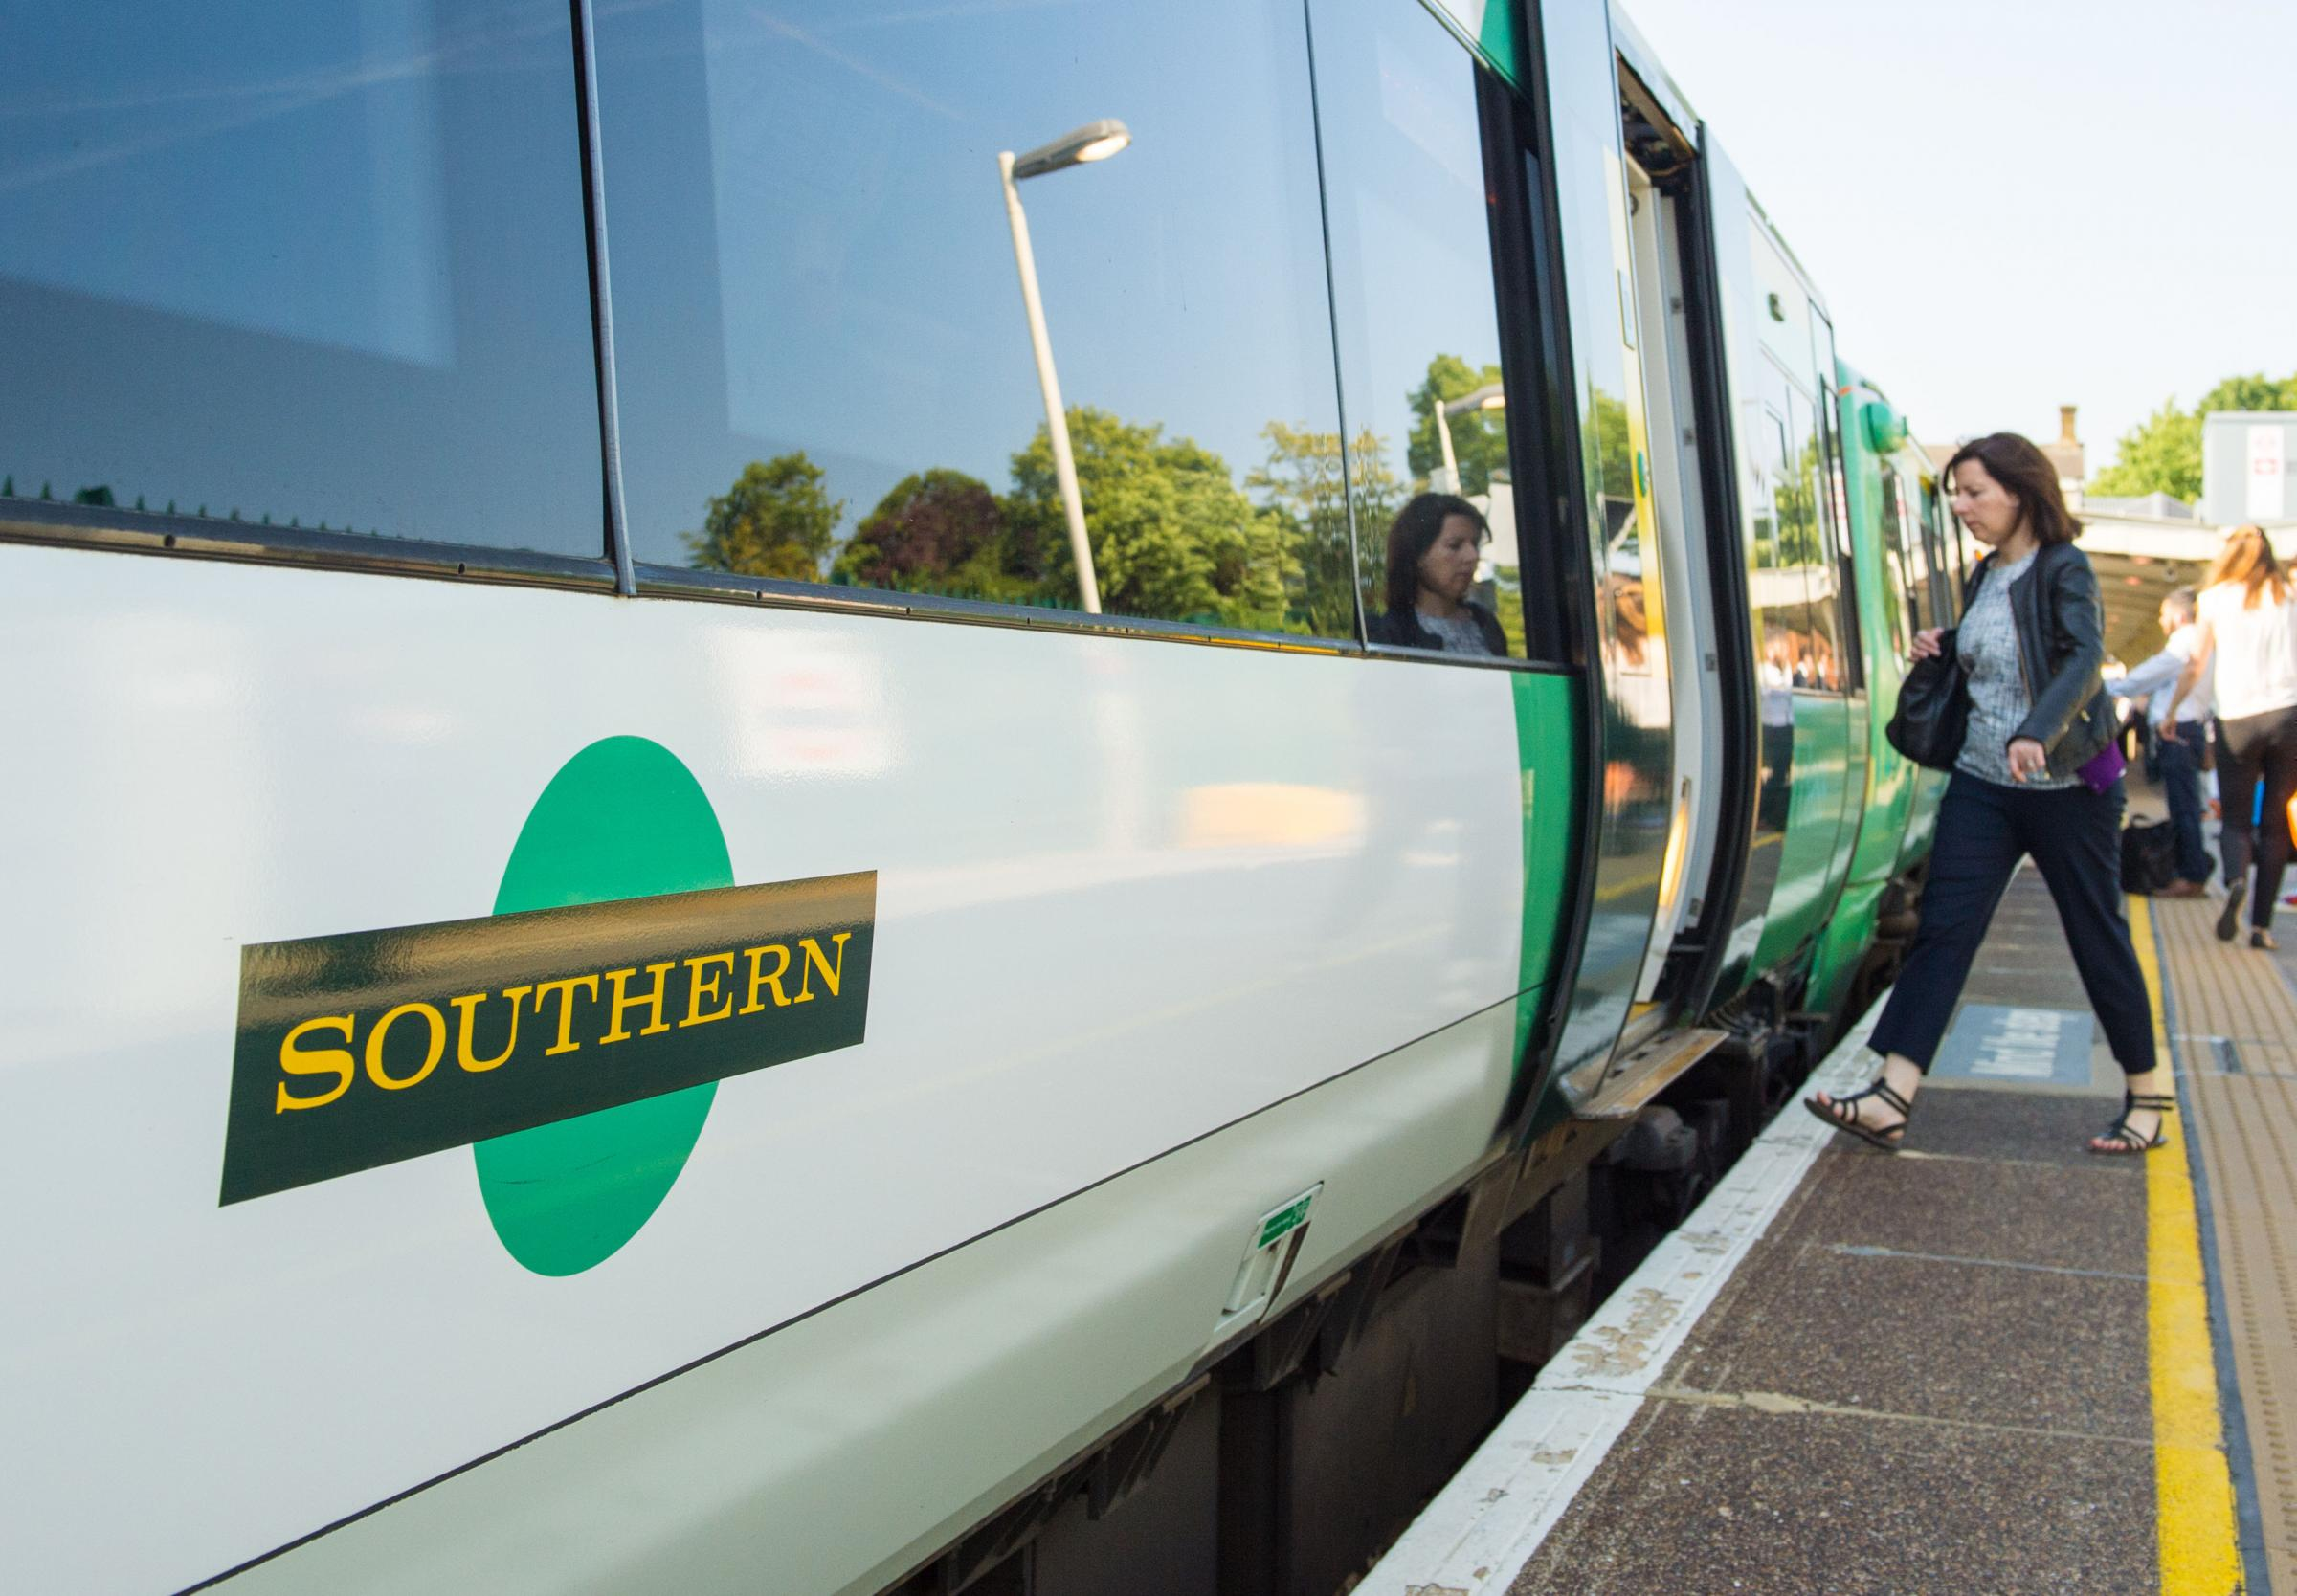 Two years on from the start of the Southern Rail industrial dispute and there is no end in sight